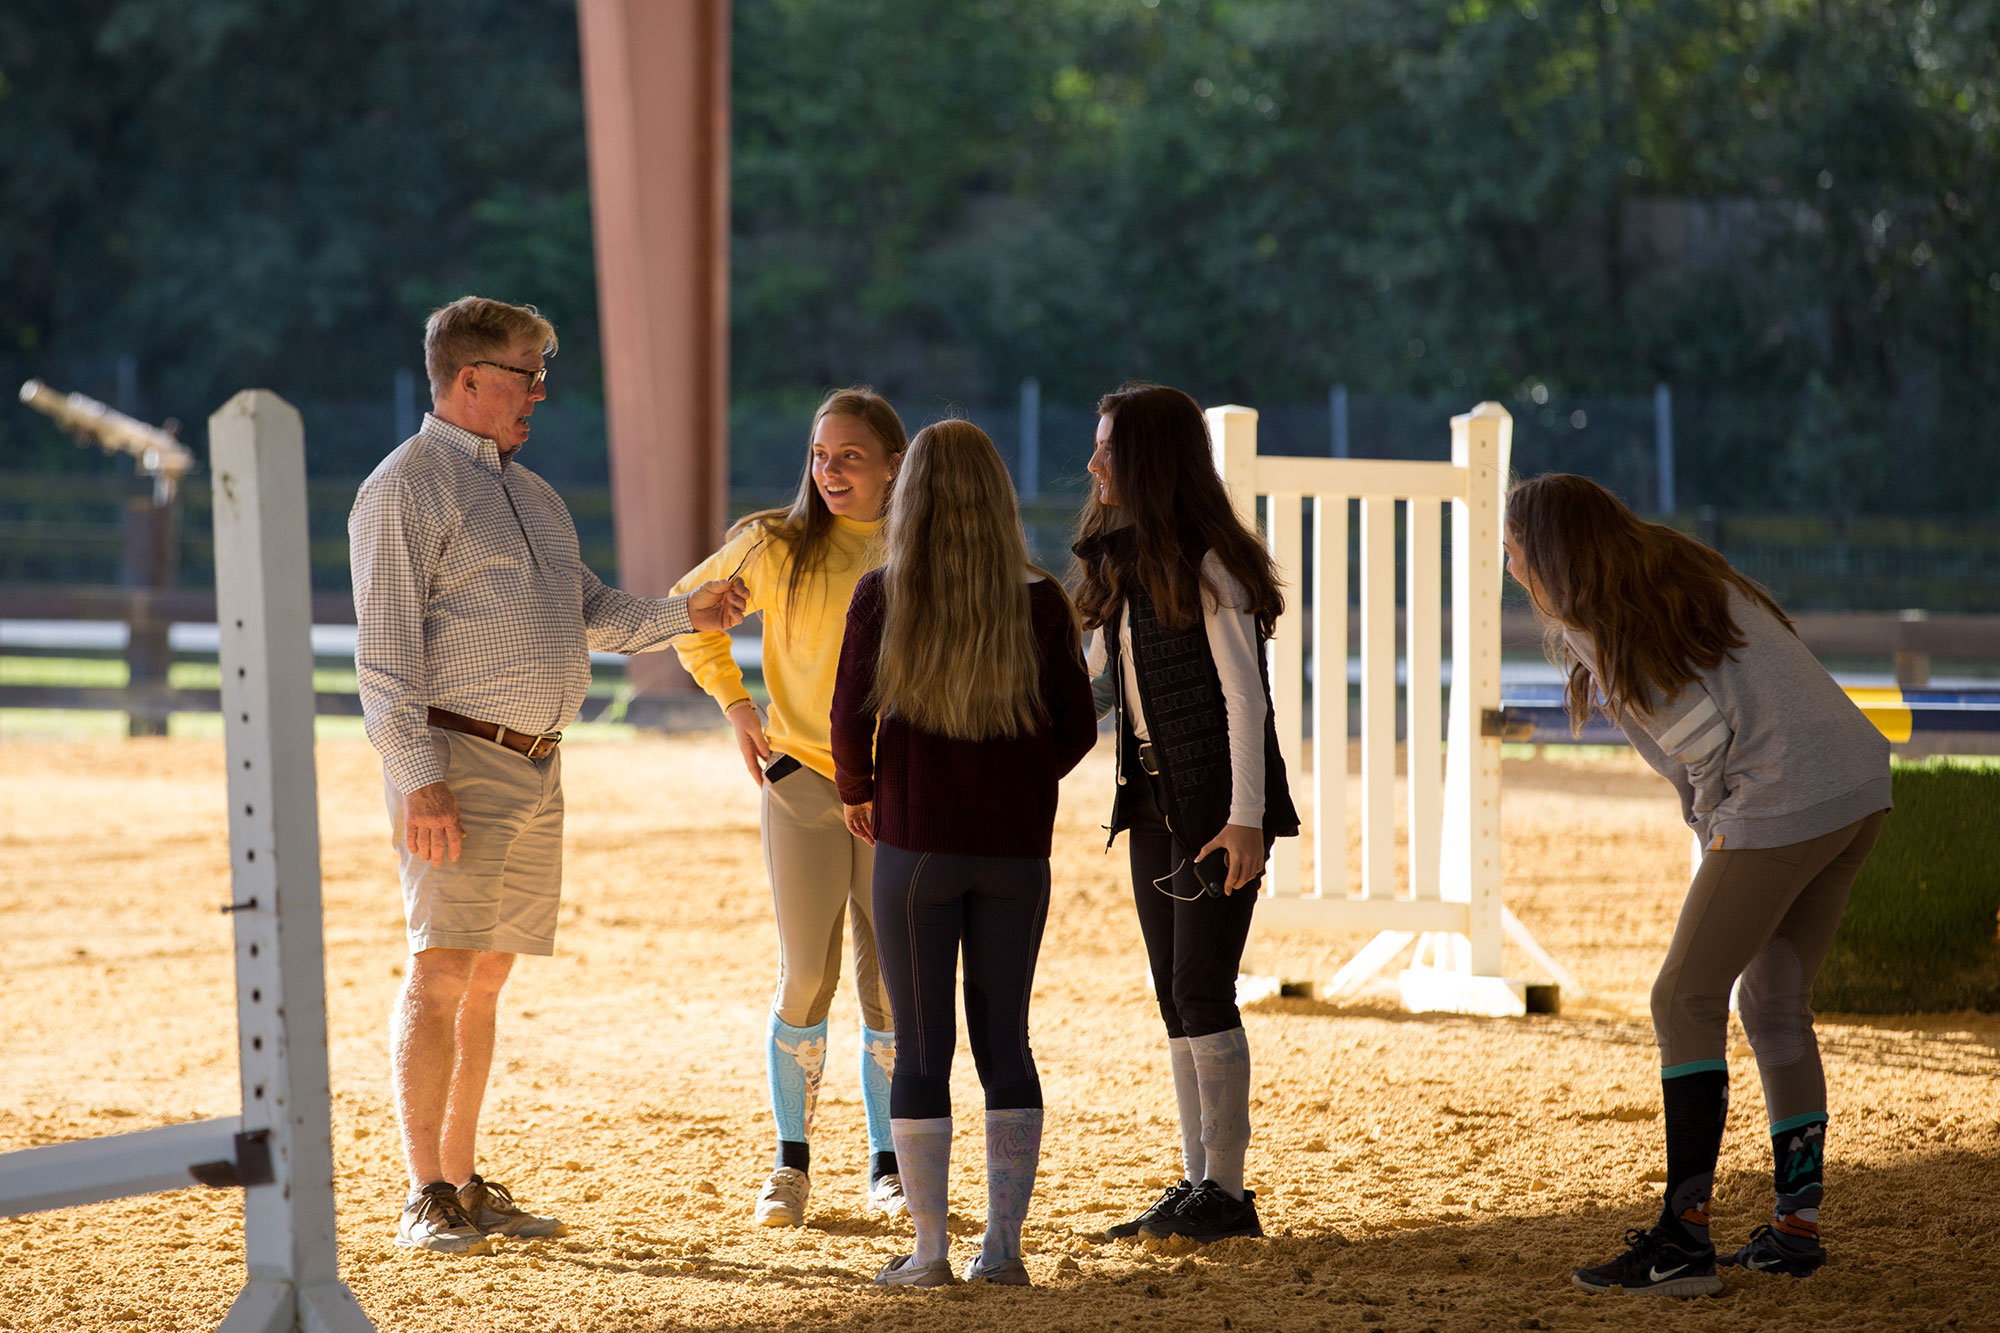 Waters Edge Stables, Professional equestrian facility, hunter/jumper specialty, full-service barn & facilities, horse boarding, riding lessons, horse shows, Waddy Oursler